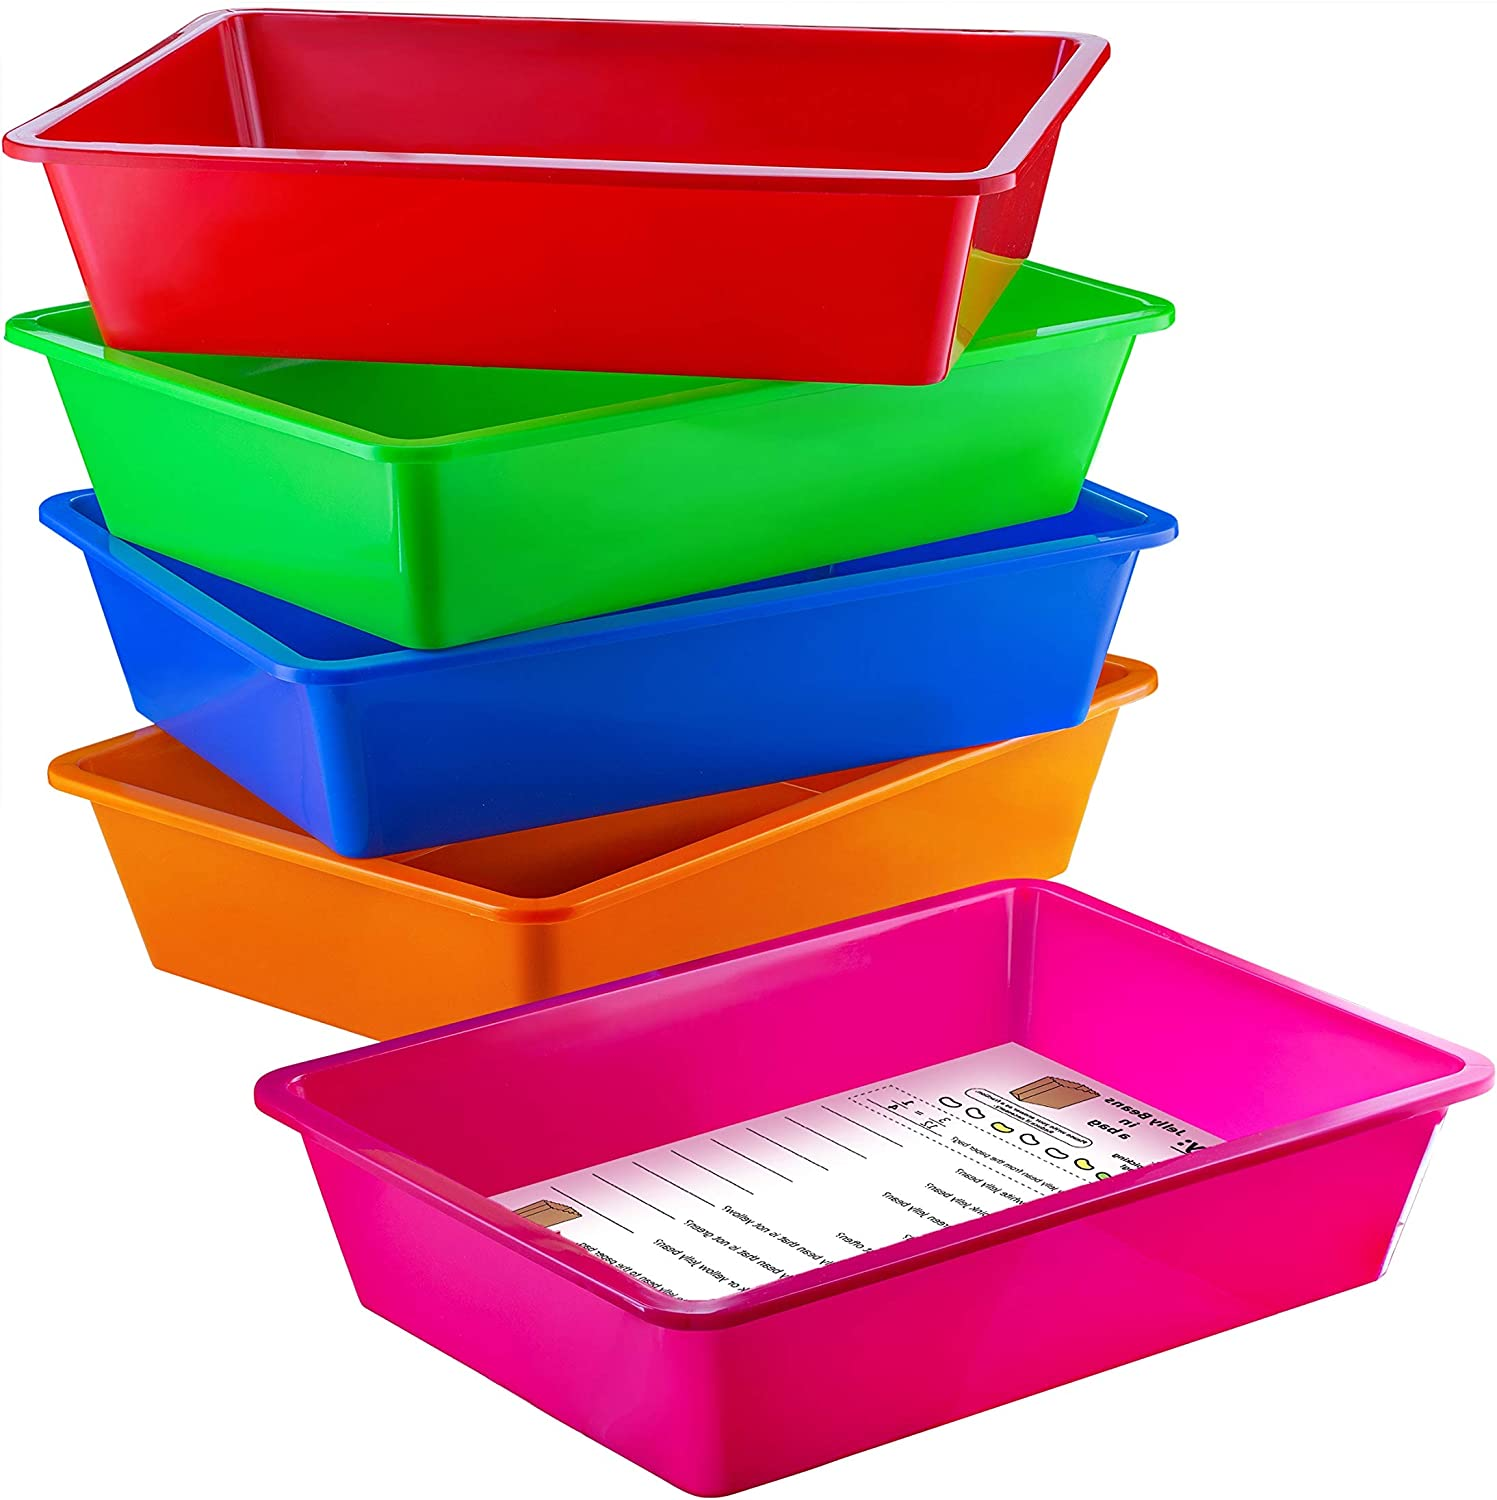 Zilpoo 5 Pack – Paper Organizer Bins, Colorful Plastic Turn in Tray, Classroom File Holder, Teacher Book School Supplies Storage Container, Drawer Organization Letter Baskets, Colored